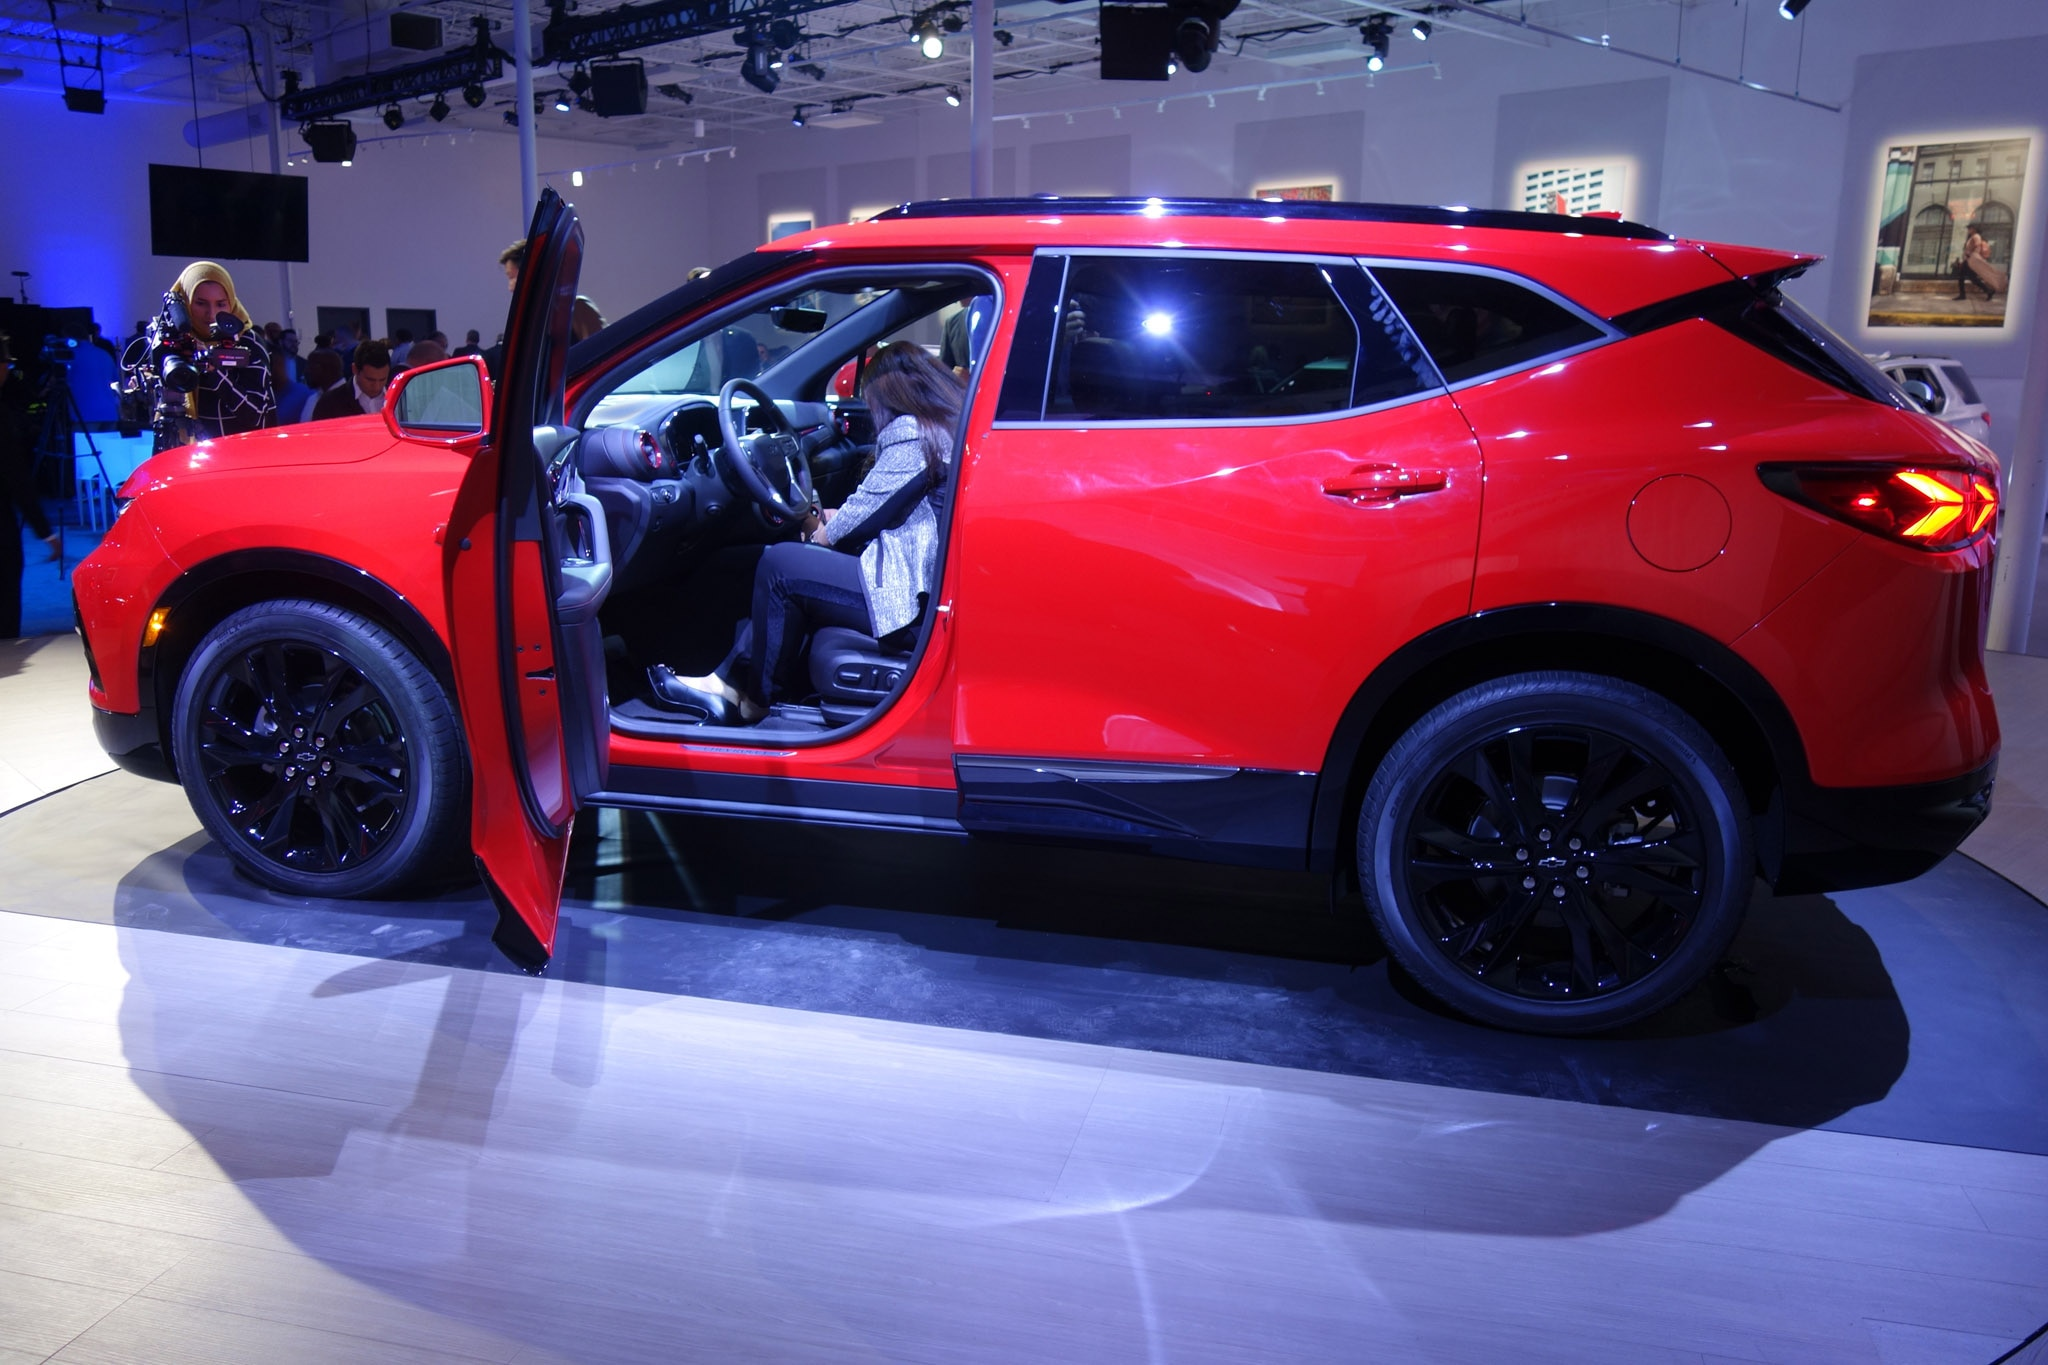 Maxresdefault X X further D D A C D E F F C Fb Cce C X X in addition Chevrolet Trailblazer further Chevrolet Blazer Atlanta Reveal as well Maxresdefault. on 2019 chevy trailblazer